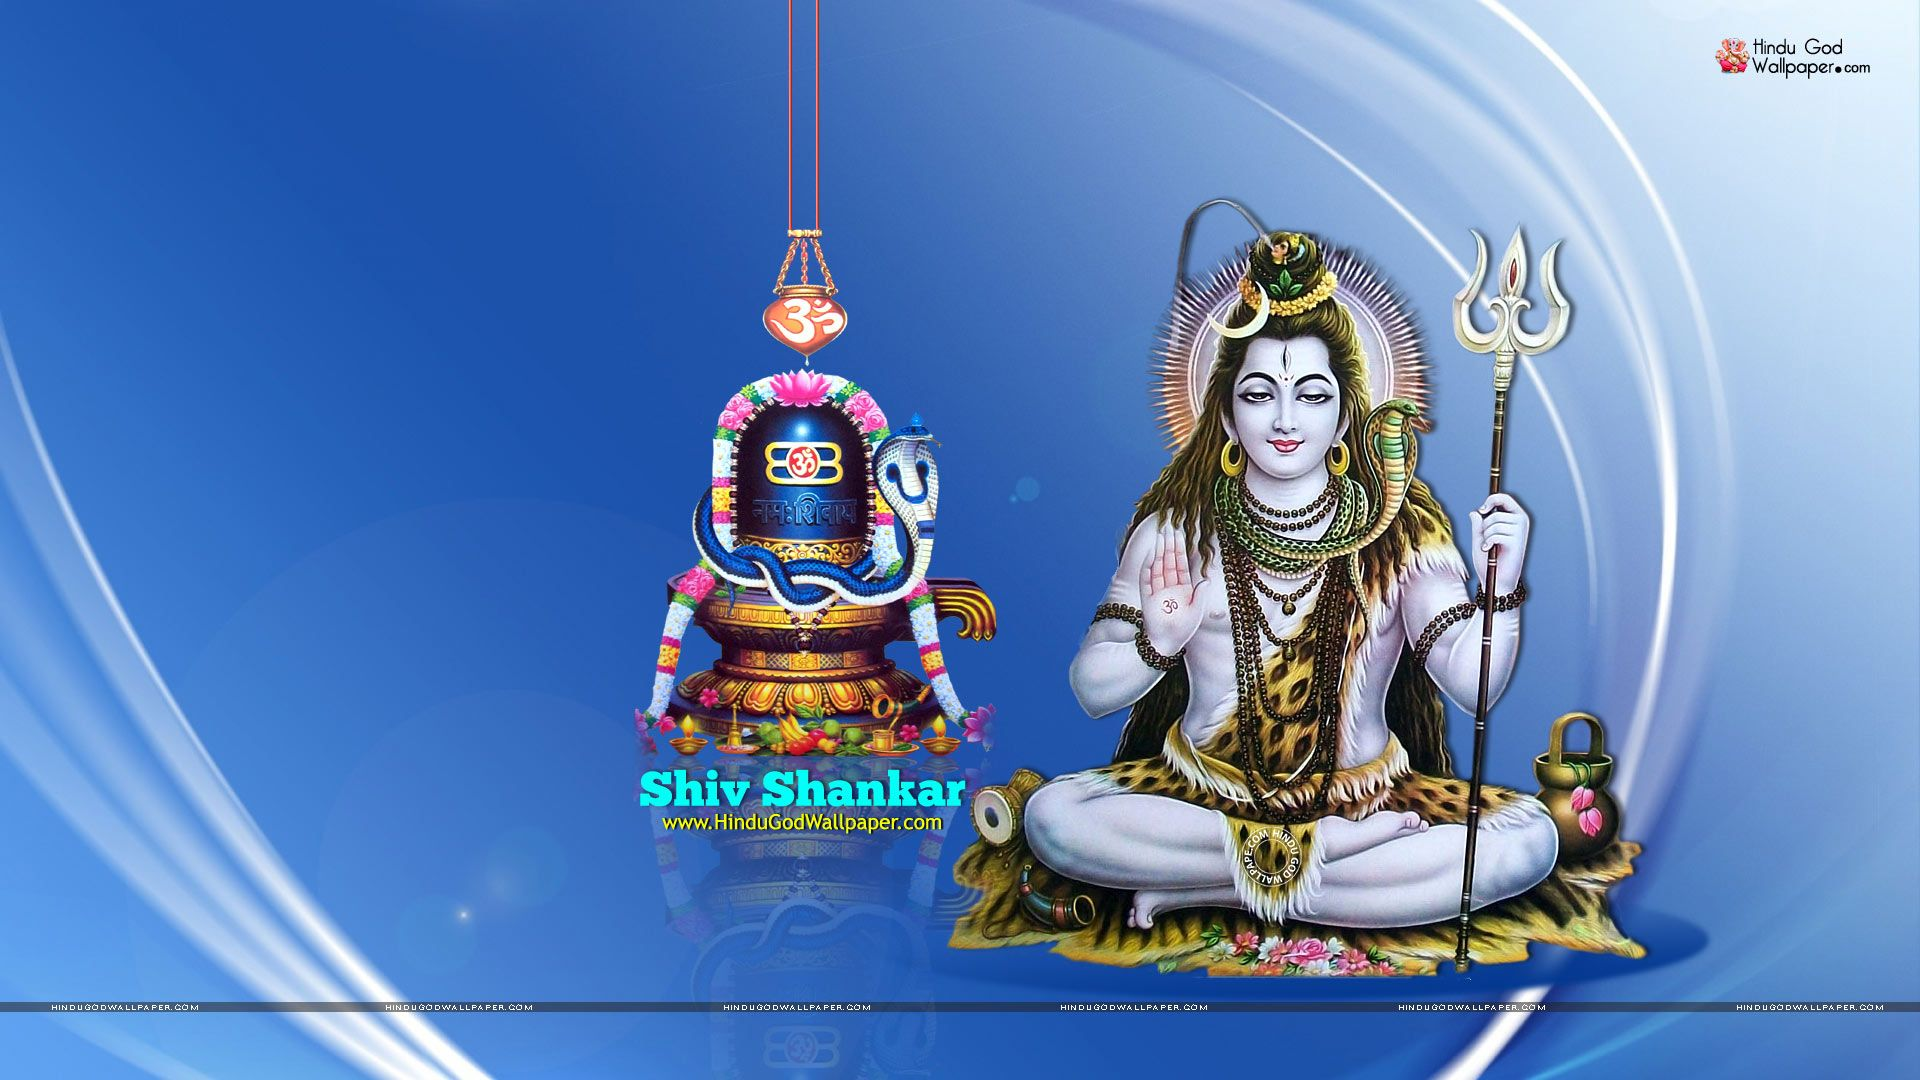 Shiv Shankar Wallpaper Hd Full Size 1080p Download Shiv In 2019